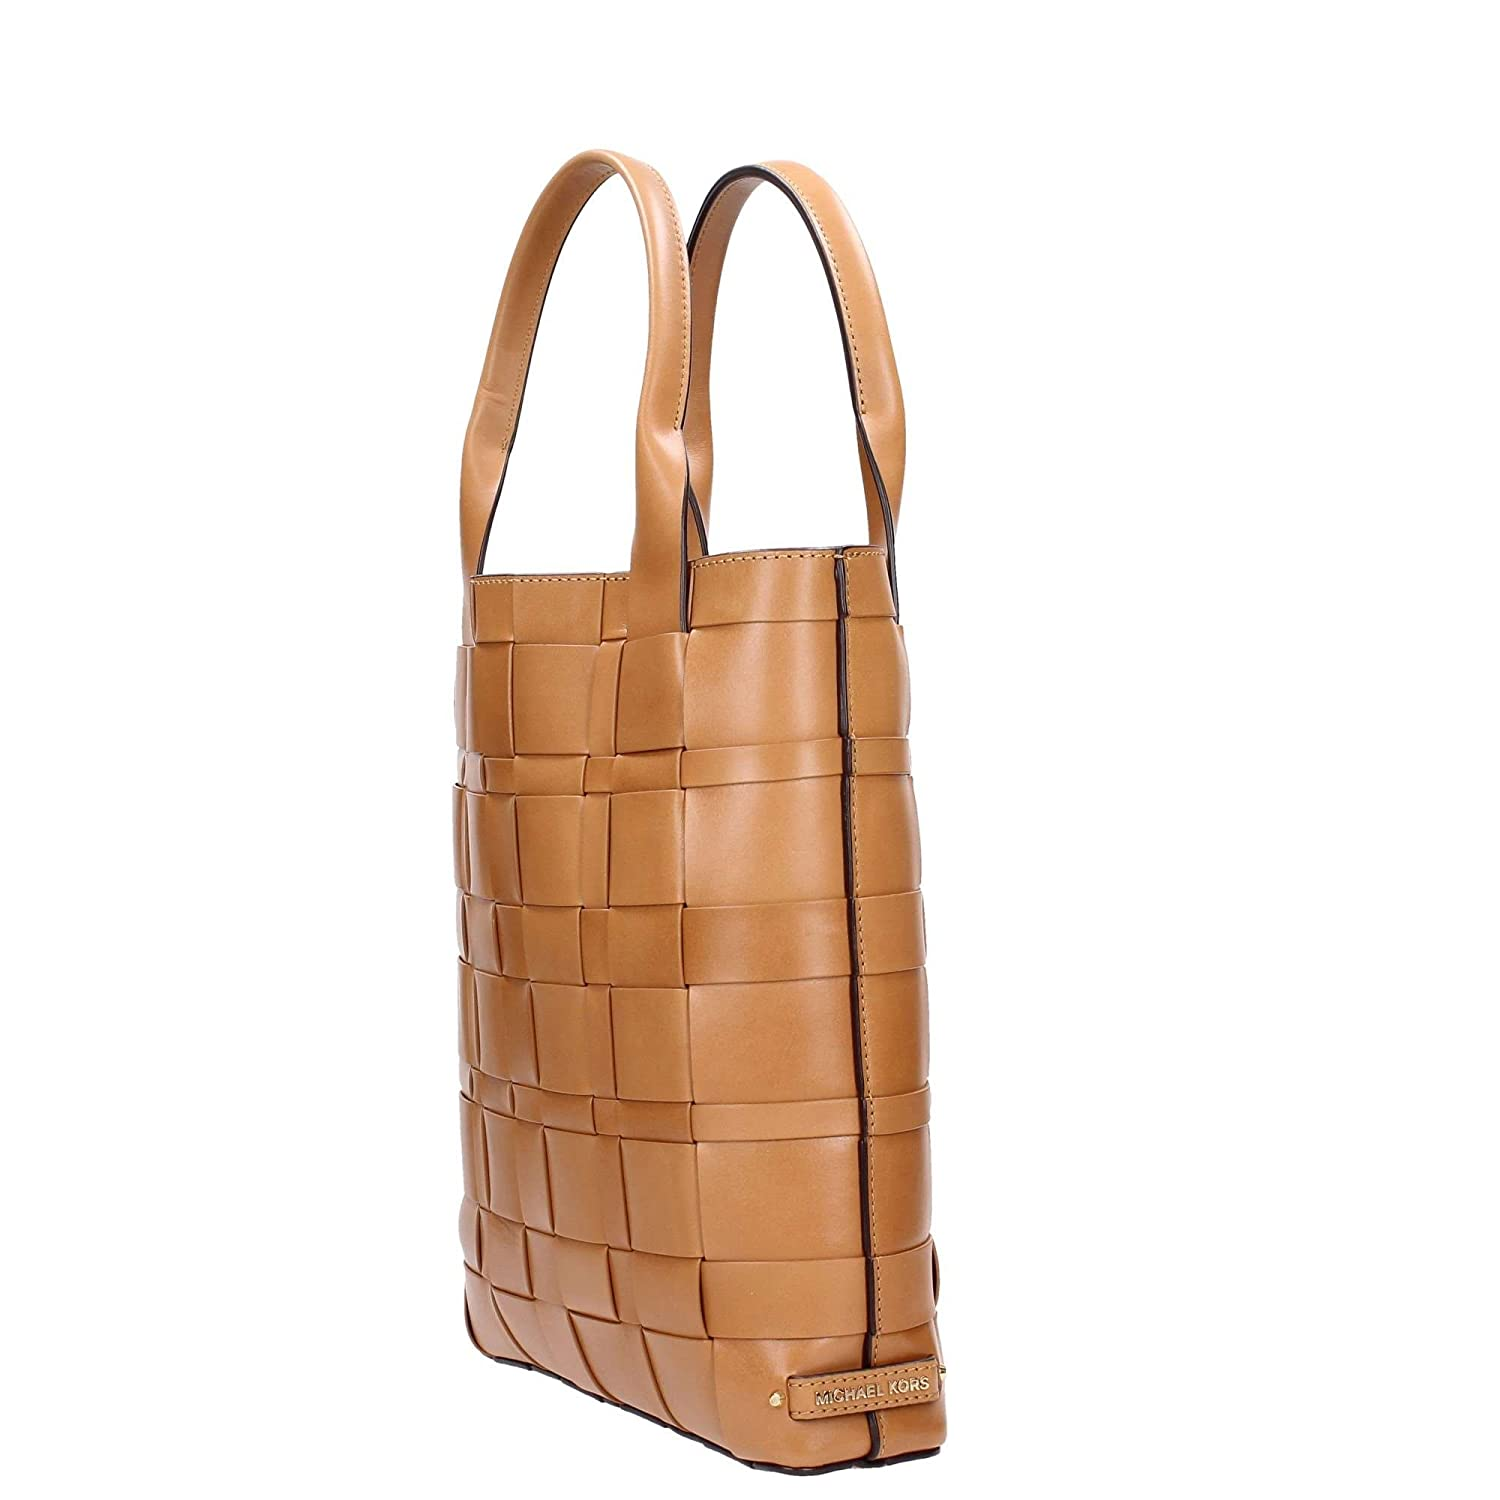 09ea6f56cb Michael Kors Vivian Large Woven North South Leather Tote in Peanut   Amazon.co.uk  Clothing